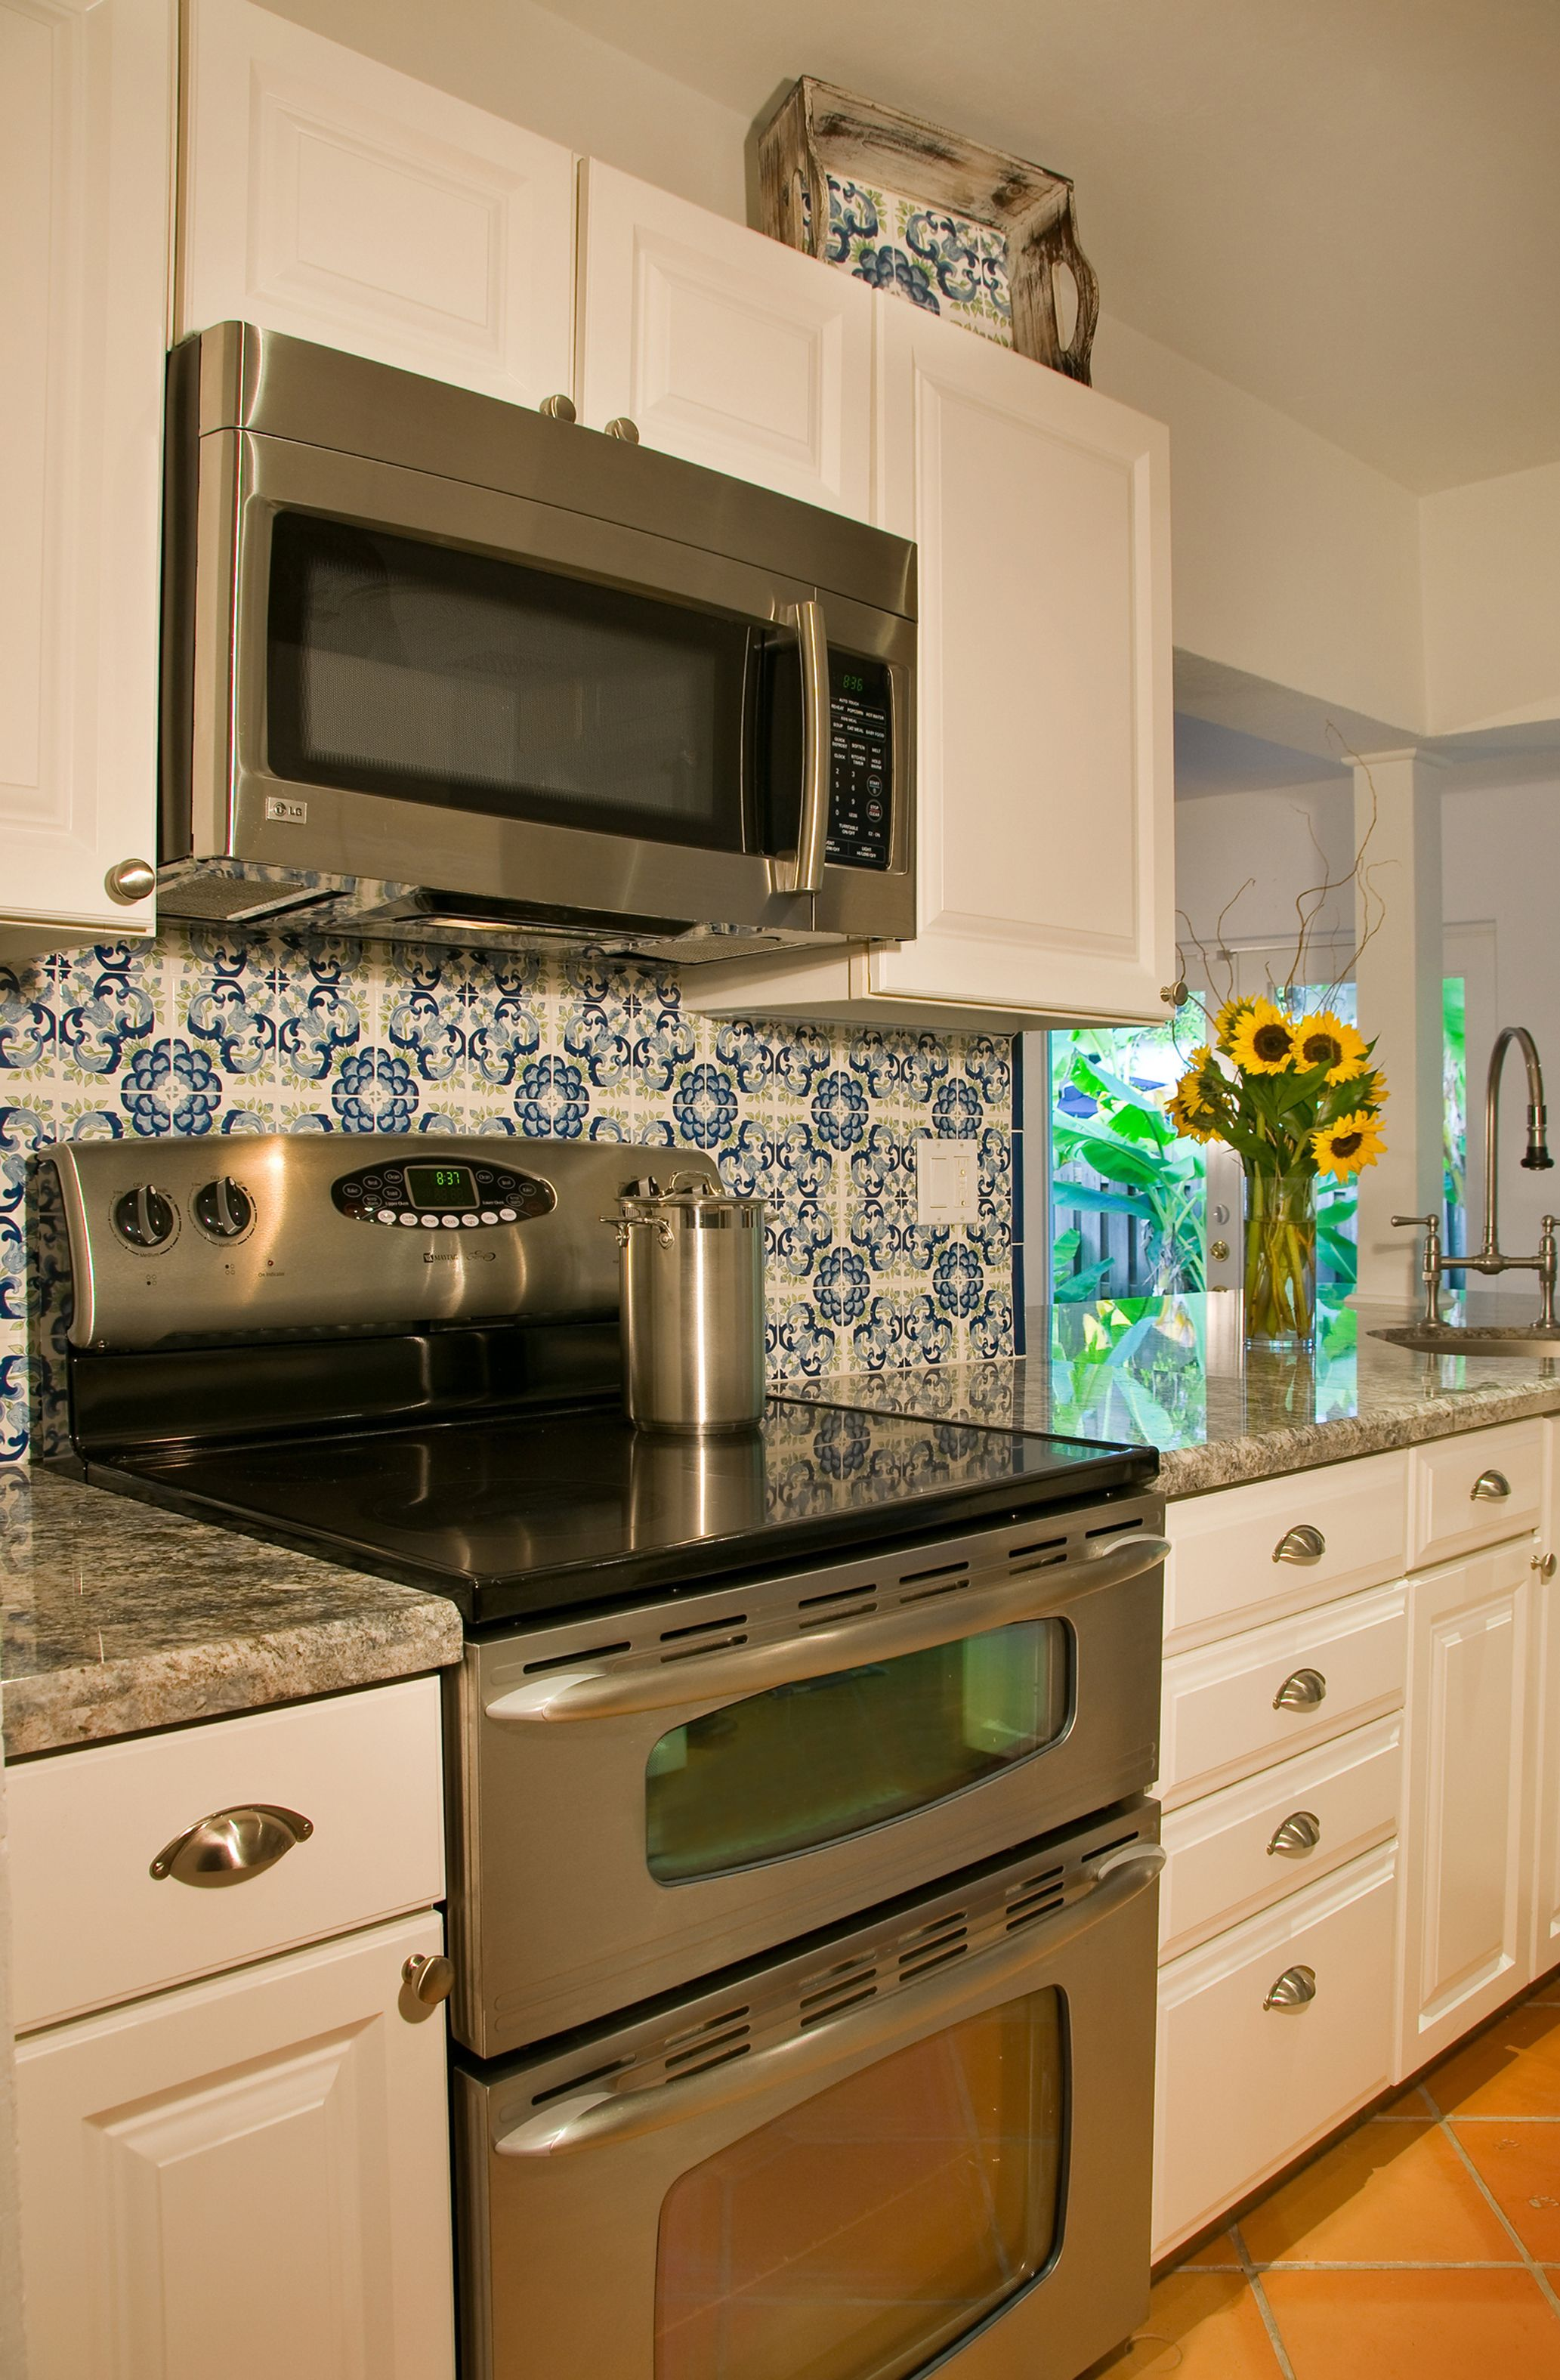 I Want My Kitchen To Look Like This I Love The Blue And White